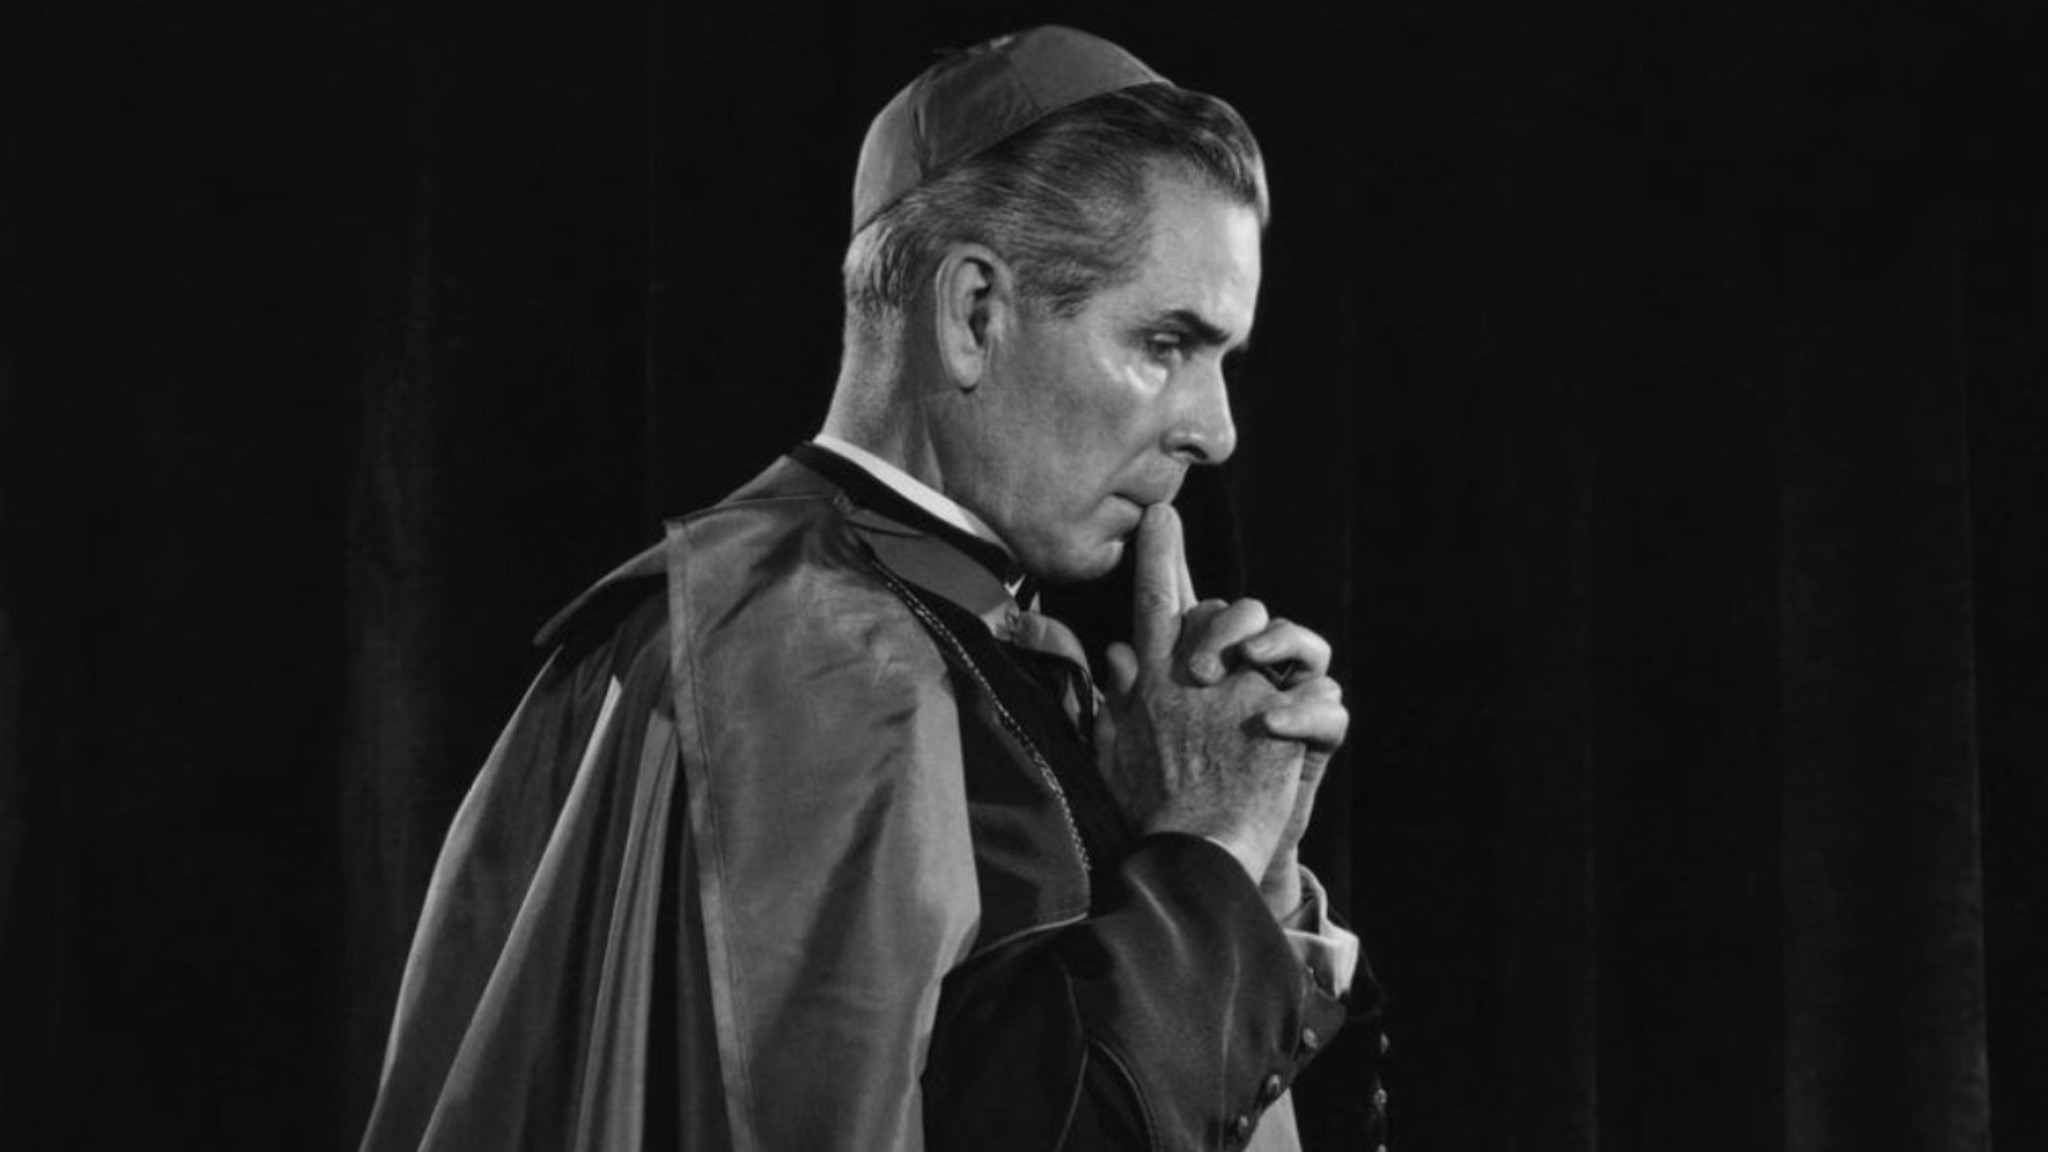 SE POSPONE LA BEATIFICACIÓN DEL VENERABLE FULTON SHEEN